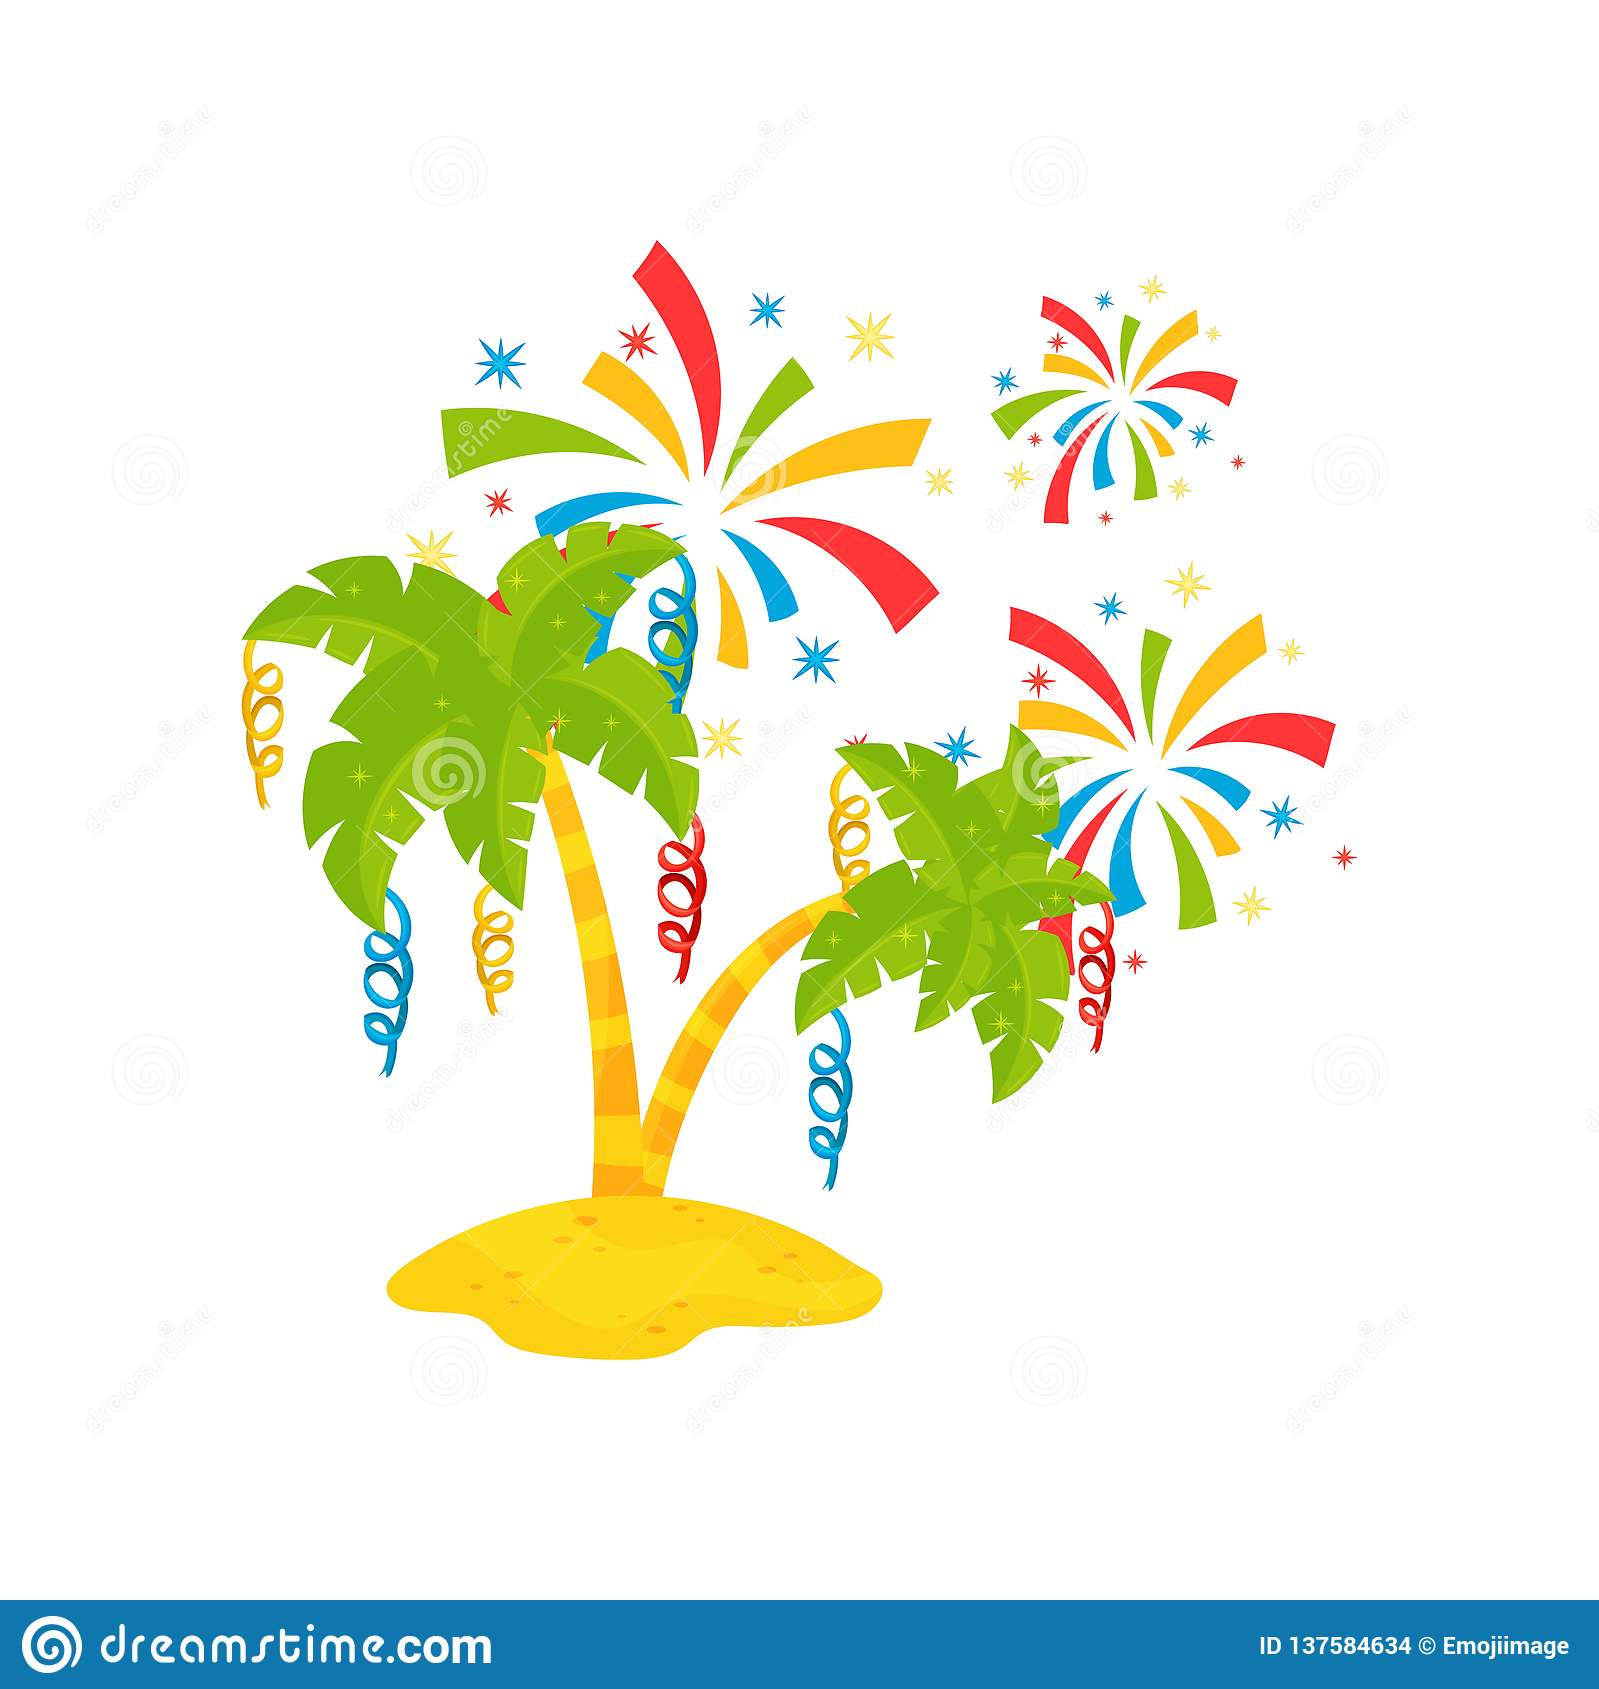 green-palm-trees-sand-colorful-festive-s